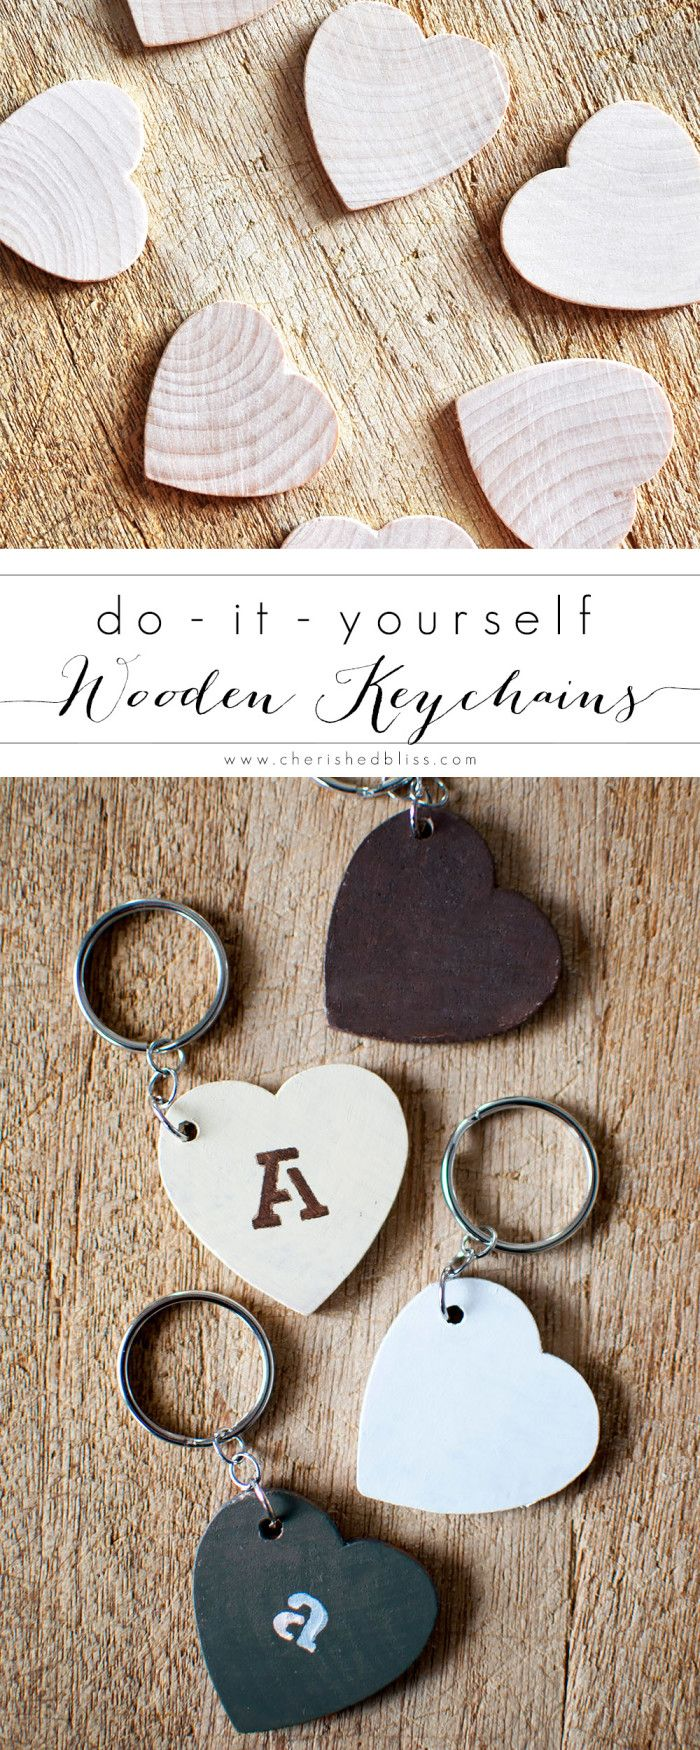 The 25 best handmade keychains ideas on pinterest felt diy keychains made from wooden hearts negle Choice Image